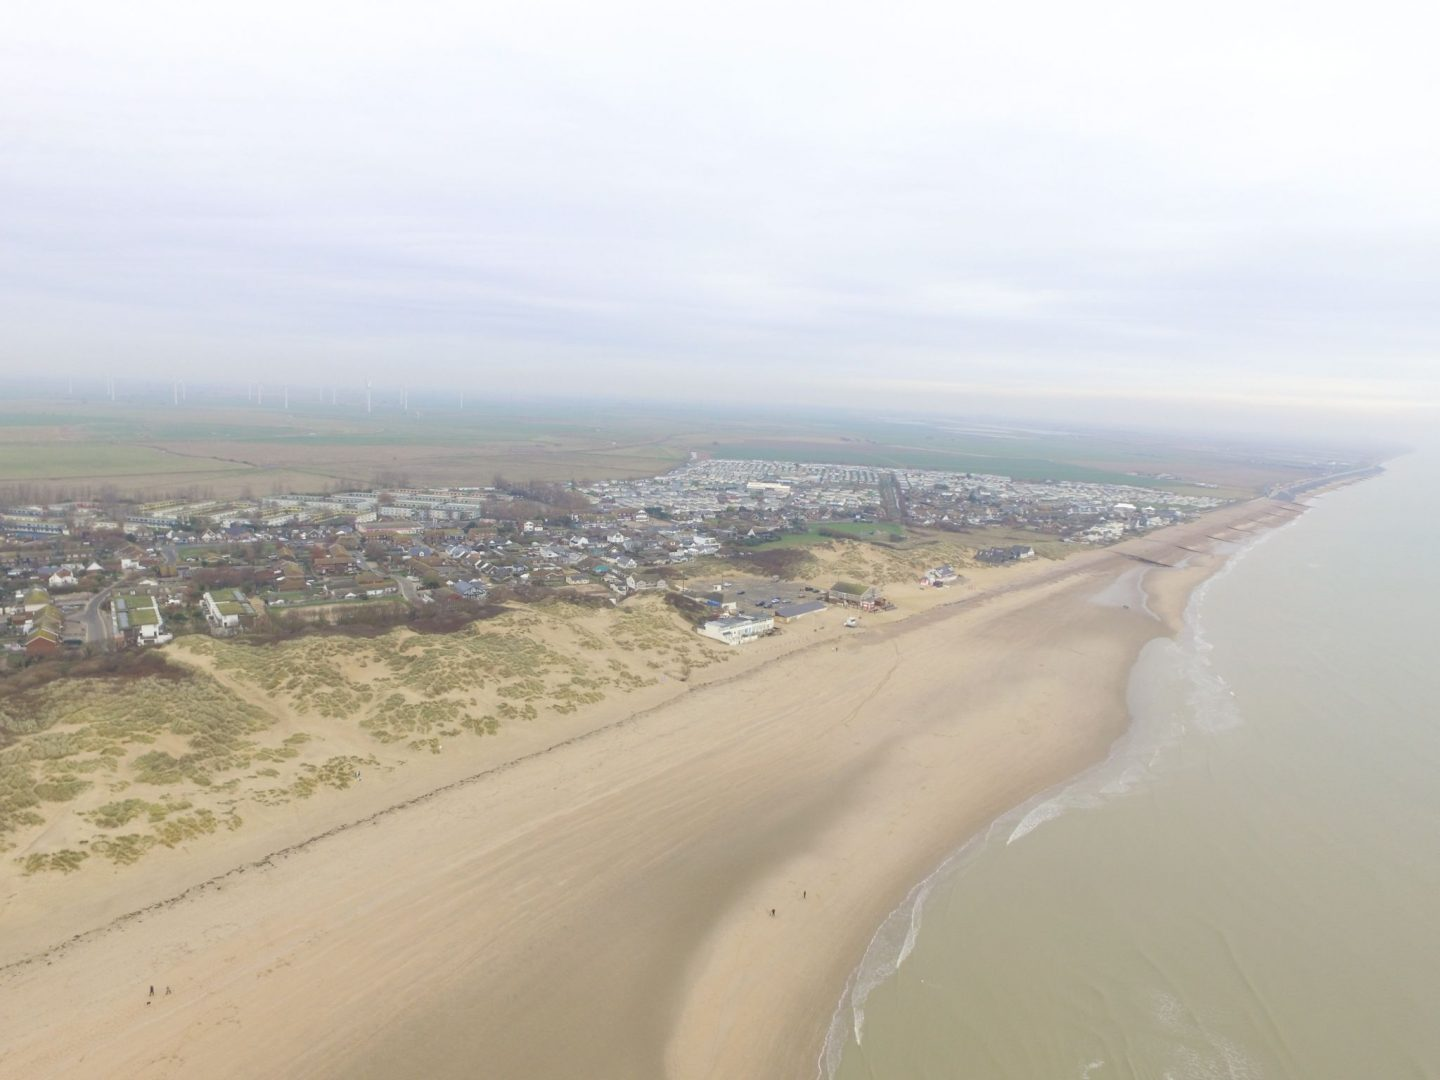 Drone photography tutorial, Camber Sands, Camber, Camber Sands beach, drone photograph, drone photo, Sussex coast, East Sussex, DJI Phantom, dadbloguk, uk dad blogger, dadbloguk.com, dad blog uk